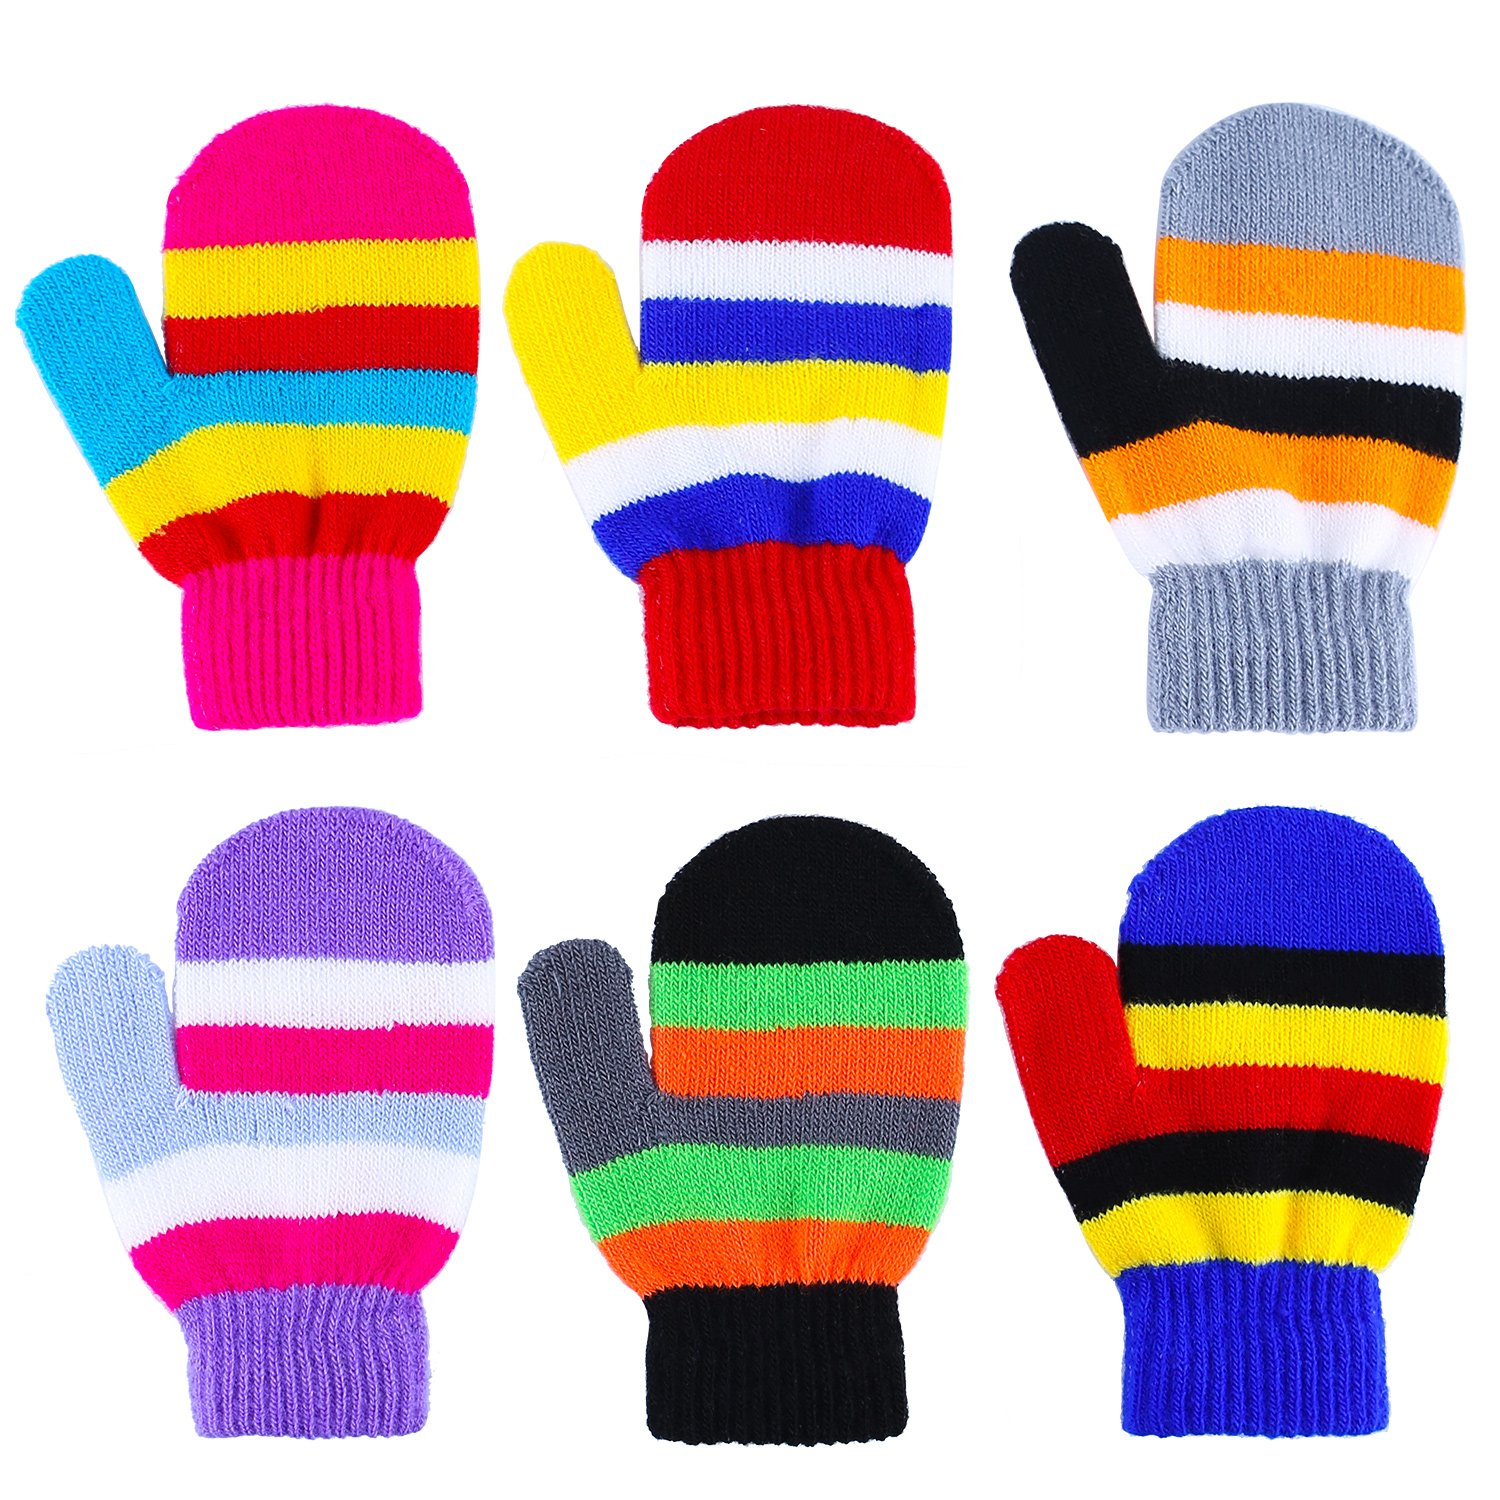 Aneco 6 Pairs Toddler Magic Gloves Warm Winter Stretch Mittens Baby Knitted Gloves